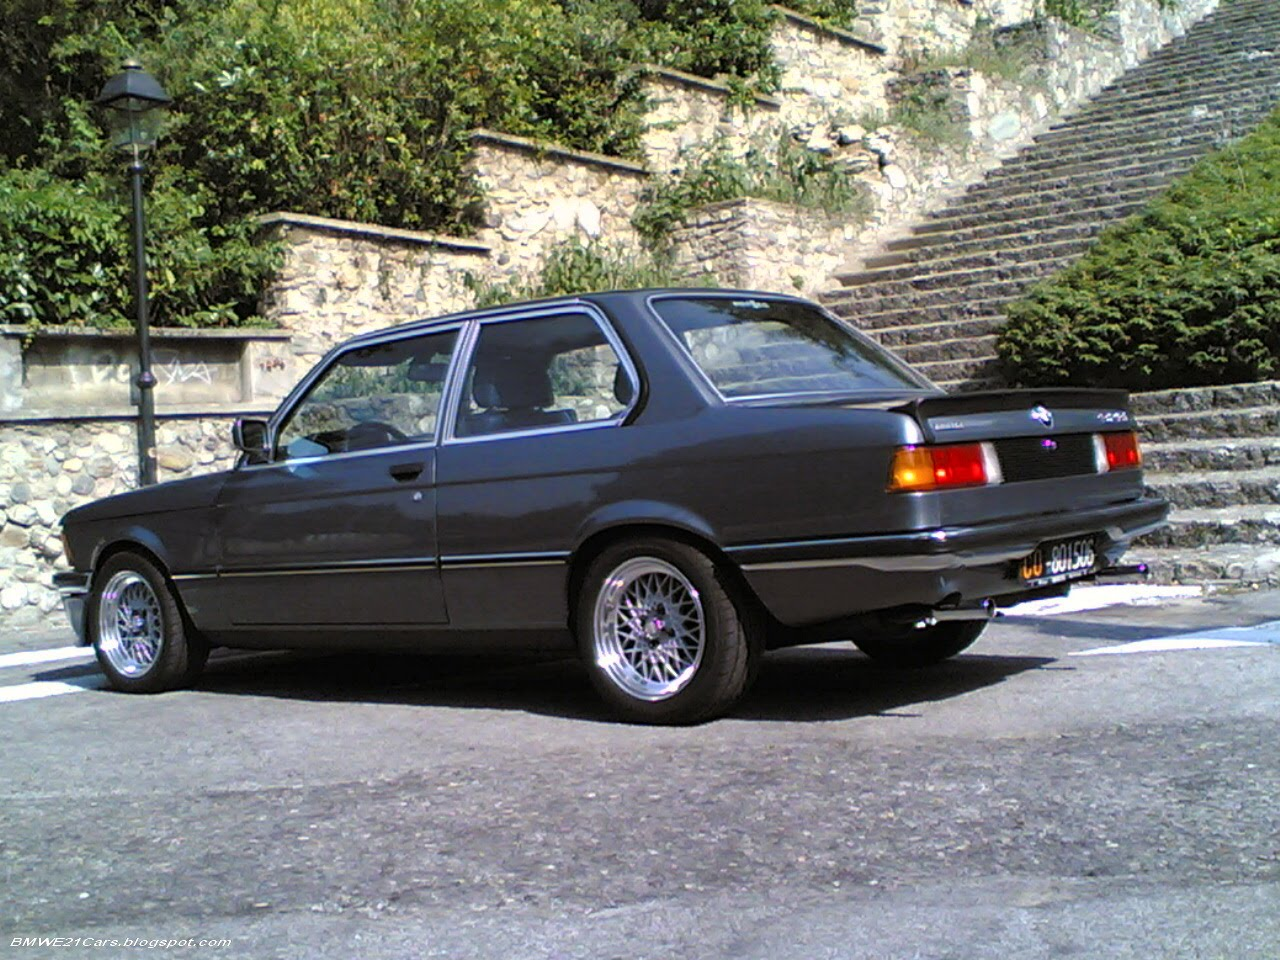 bmw m3 top gear html with Bmw E21 Hartge 29 on 2011 BMW M3 1 furthermore Bmw M3 E92 as well Rare 1991 Mercedes Benz 190 Series 25 16v Evolution Ii Up For Sale It S Pricey 107341 furthermore Dan Bilzerian Finally Admits Most Of His Cars Are Rentals 95638 besides Classic Ferrari 340 4a1ae174f05e4854.